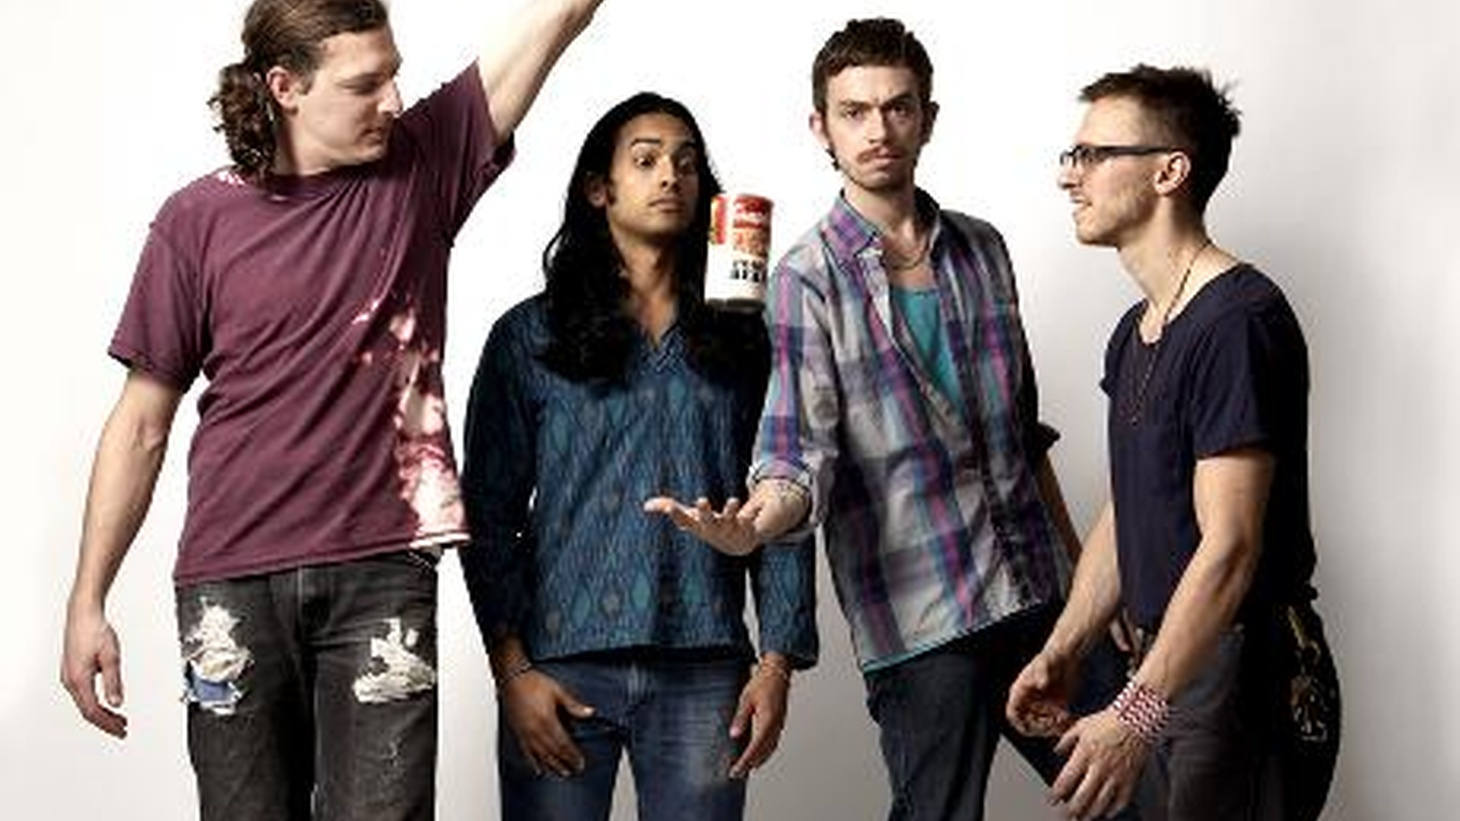 """Yeasayer generated a huge buzz in the music world after their appearance at SXSW in 2007. Their sound is influenced by Pan- African and Middle Eastern music and they honed their vocal skills in a barbershop quartet. Today's Top Tune is one of their new songs from Odd Blood, called """"O.N.E."""""""